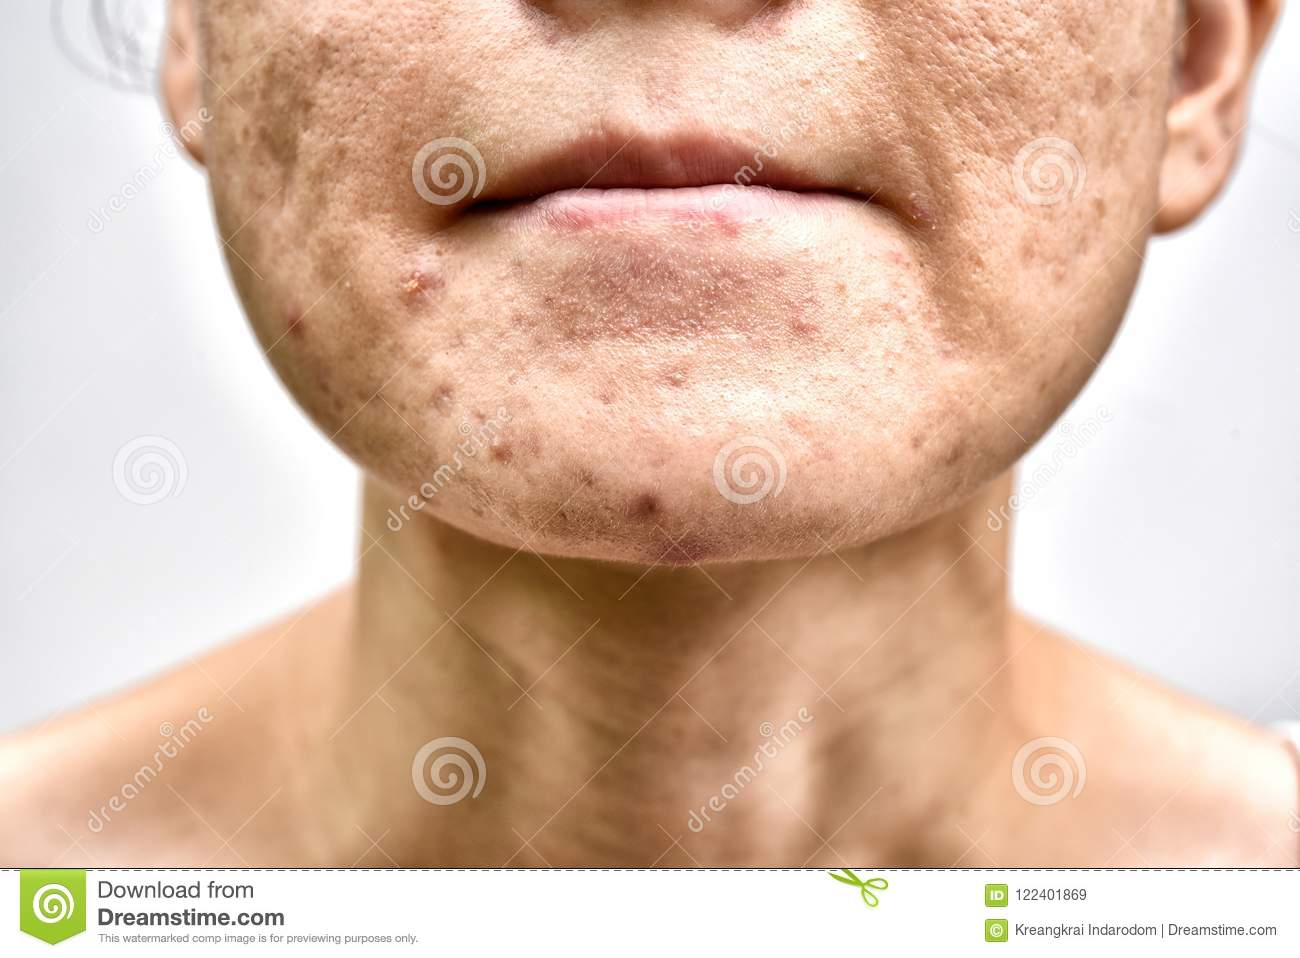 Skin problem with acne diseases, Close up woman face with whitehead pimples on chin, Menstruation breakout.